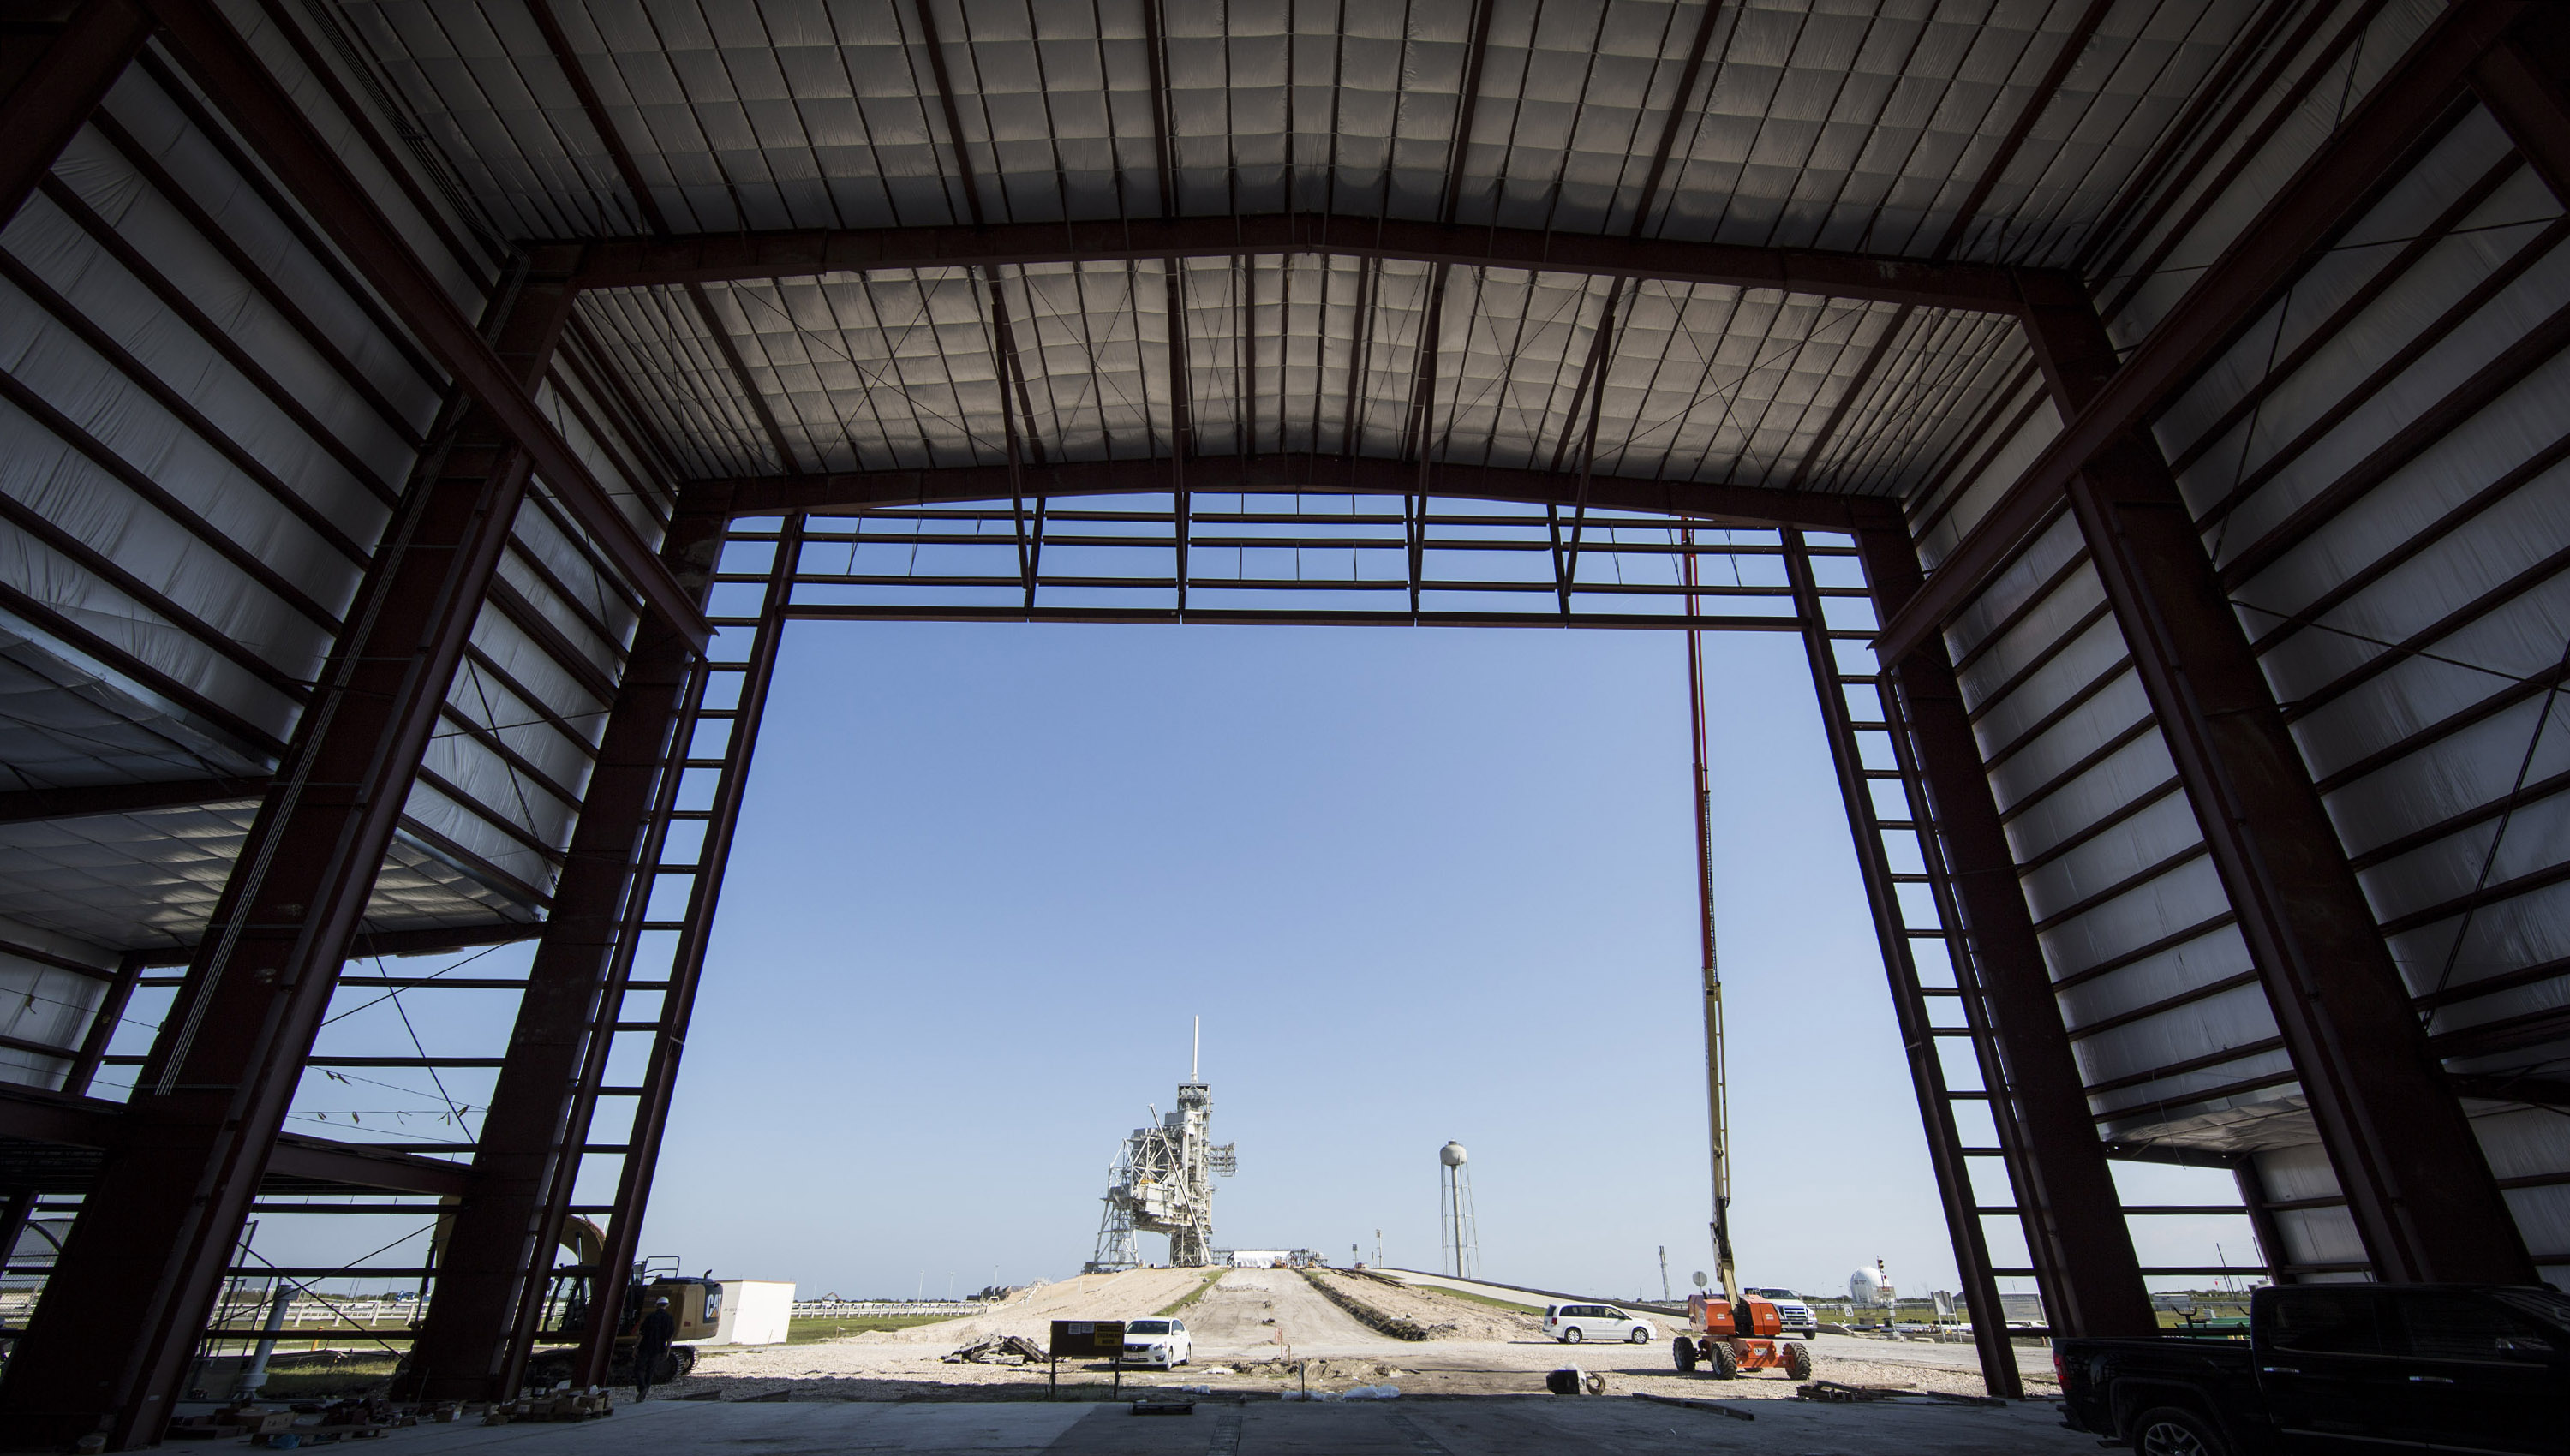 spacex launch pad 39a - photo #7